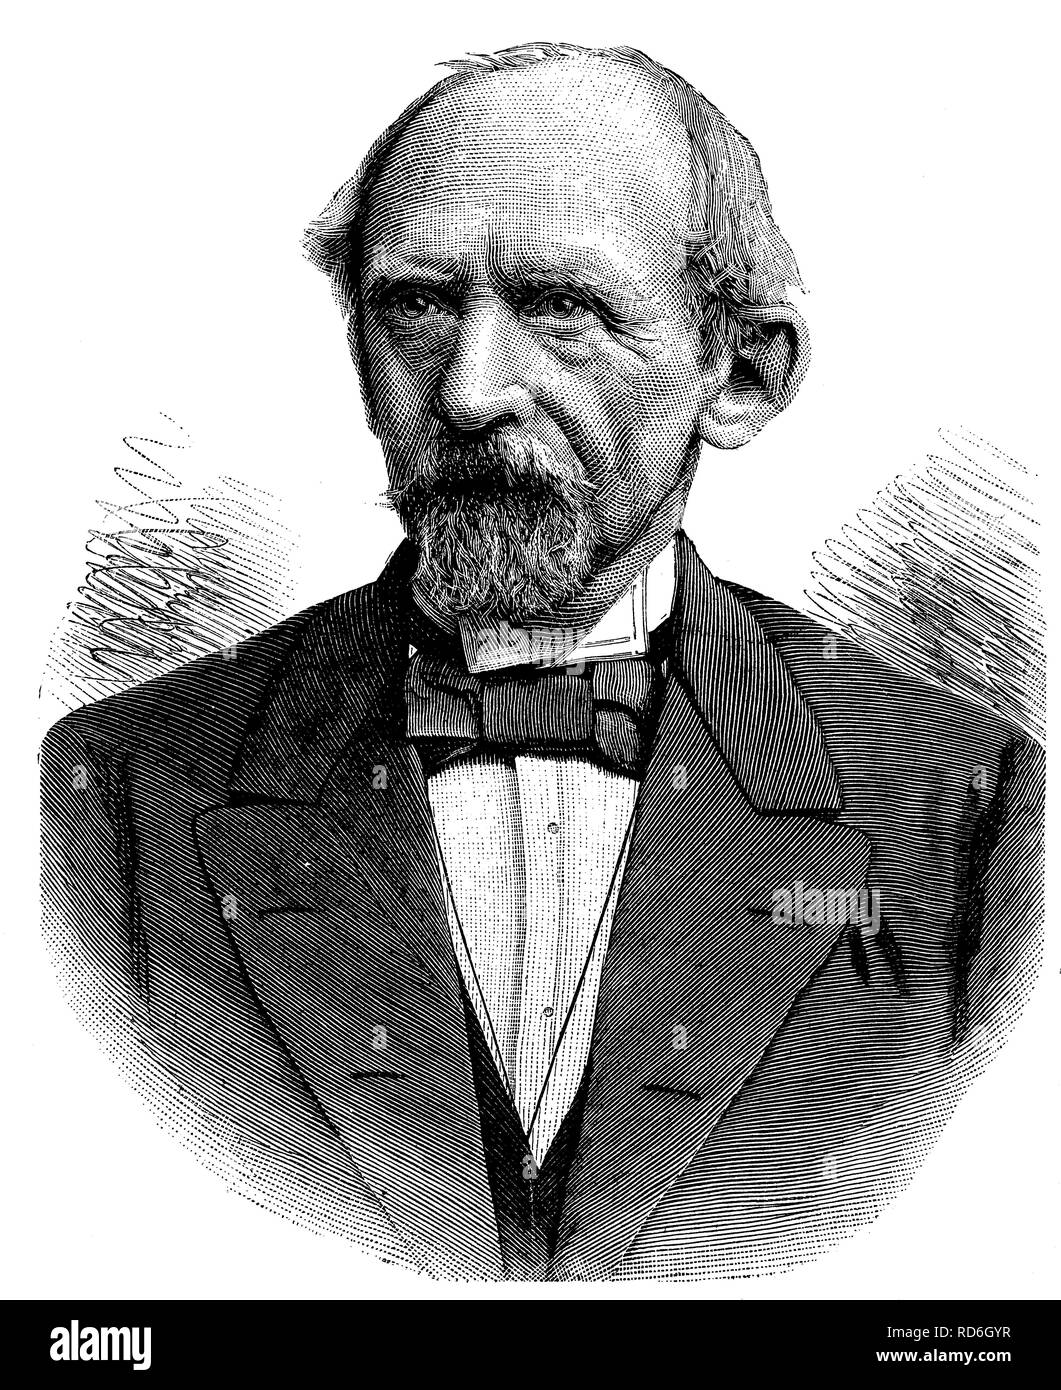 Lothar Bucher, 1817 - 1892, politician, publicist and close aide of Bismarck, historical illustration circa 1893 - Stock Image